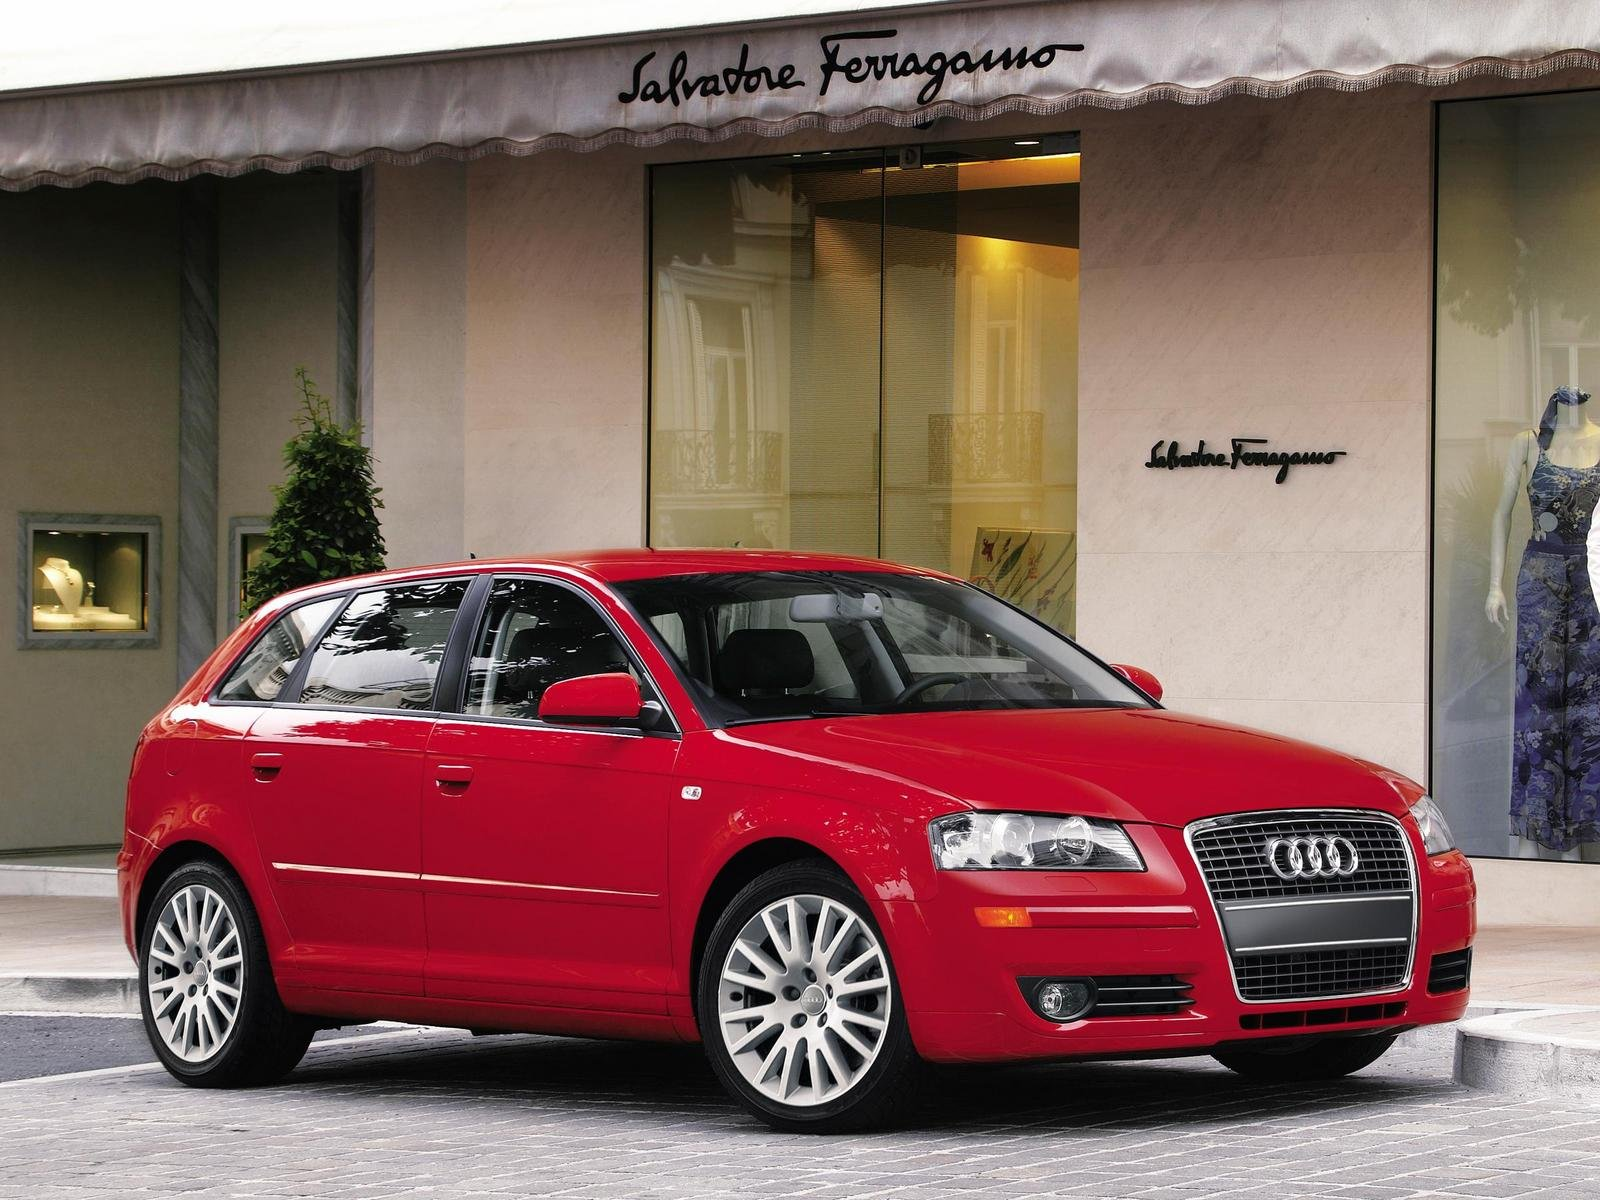 2007 audi a3 picture 99774 car review top speed. Black Bedroom Furniture Sets. Home Design Ideas